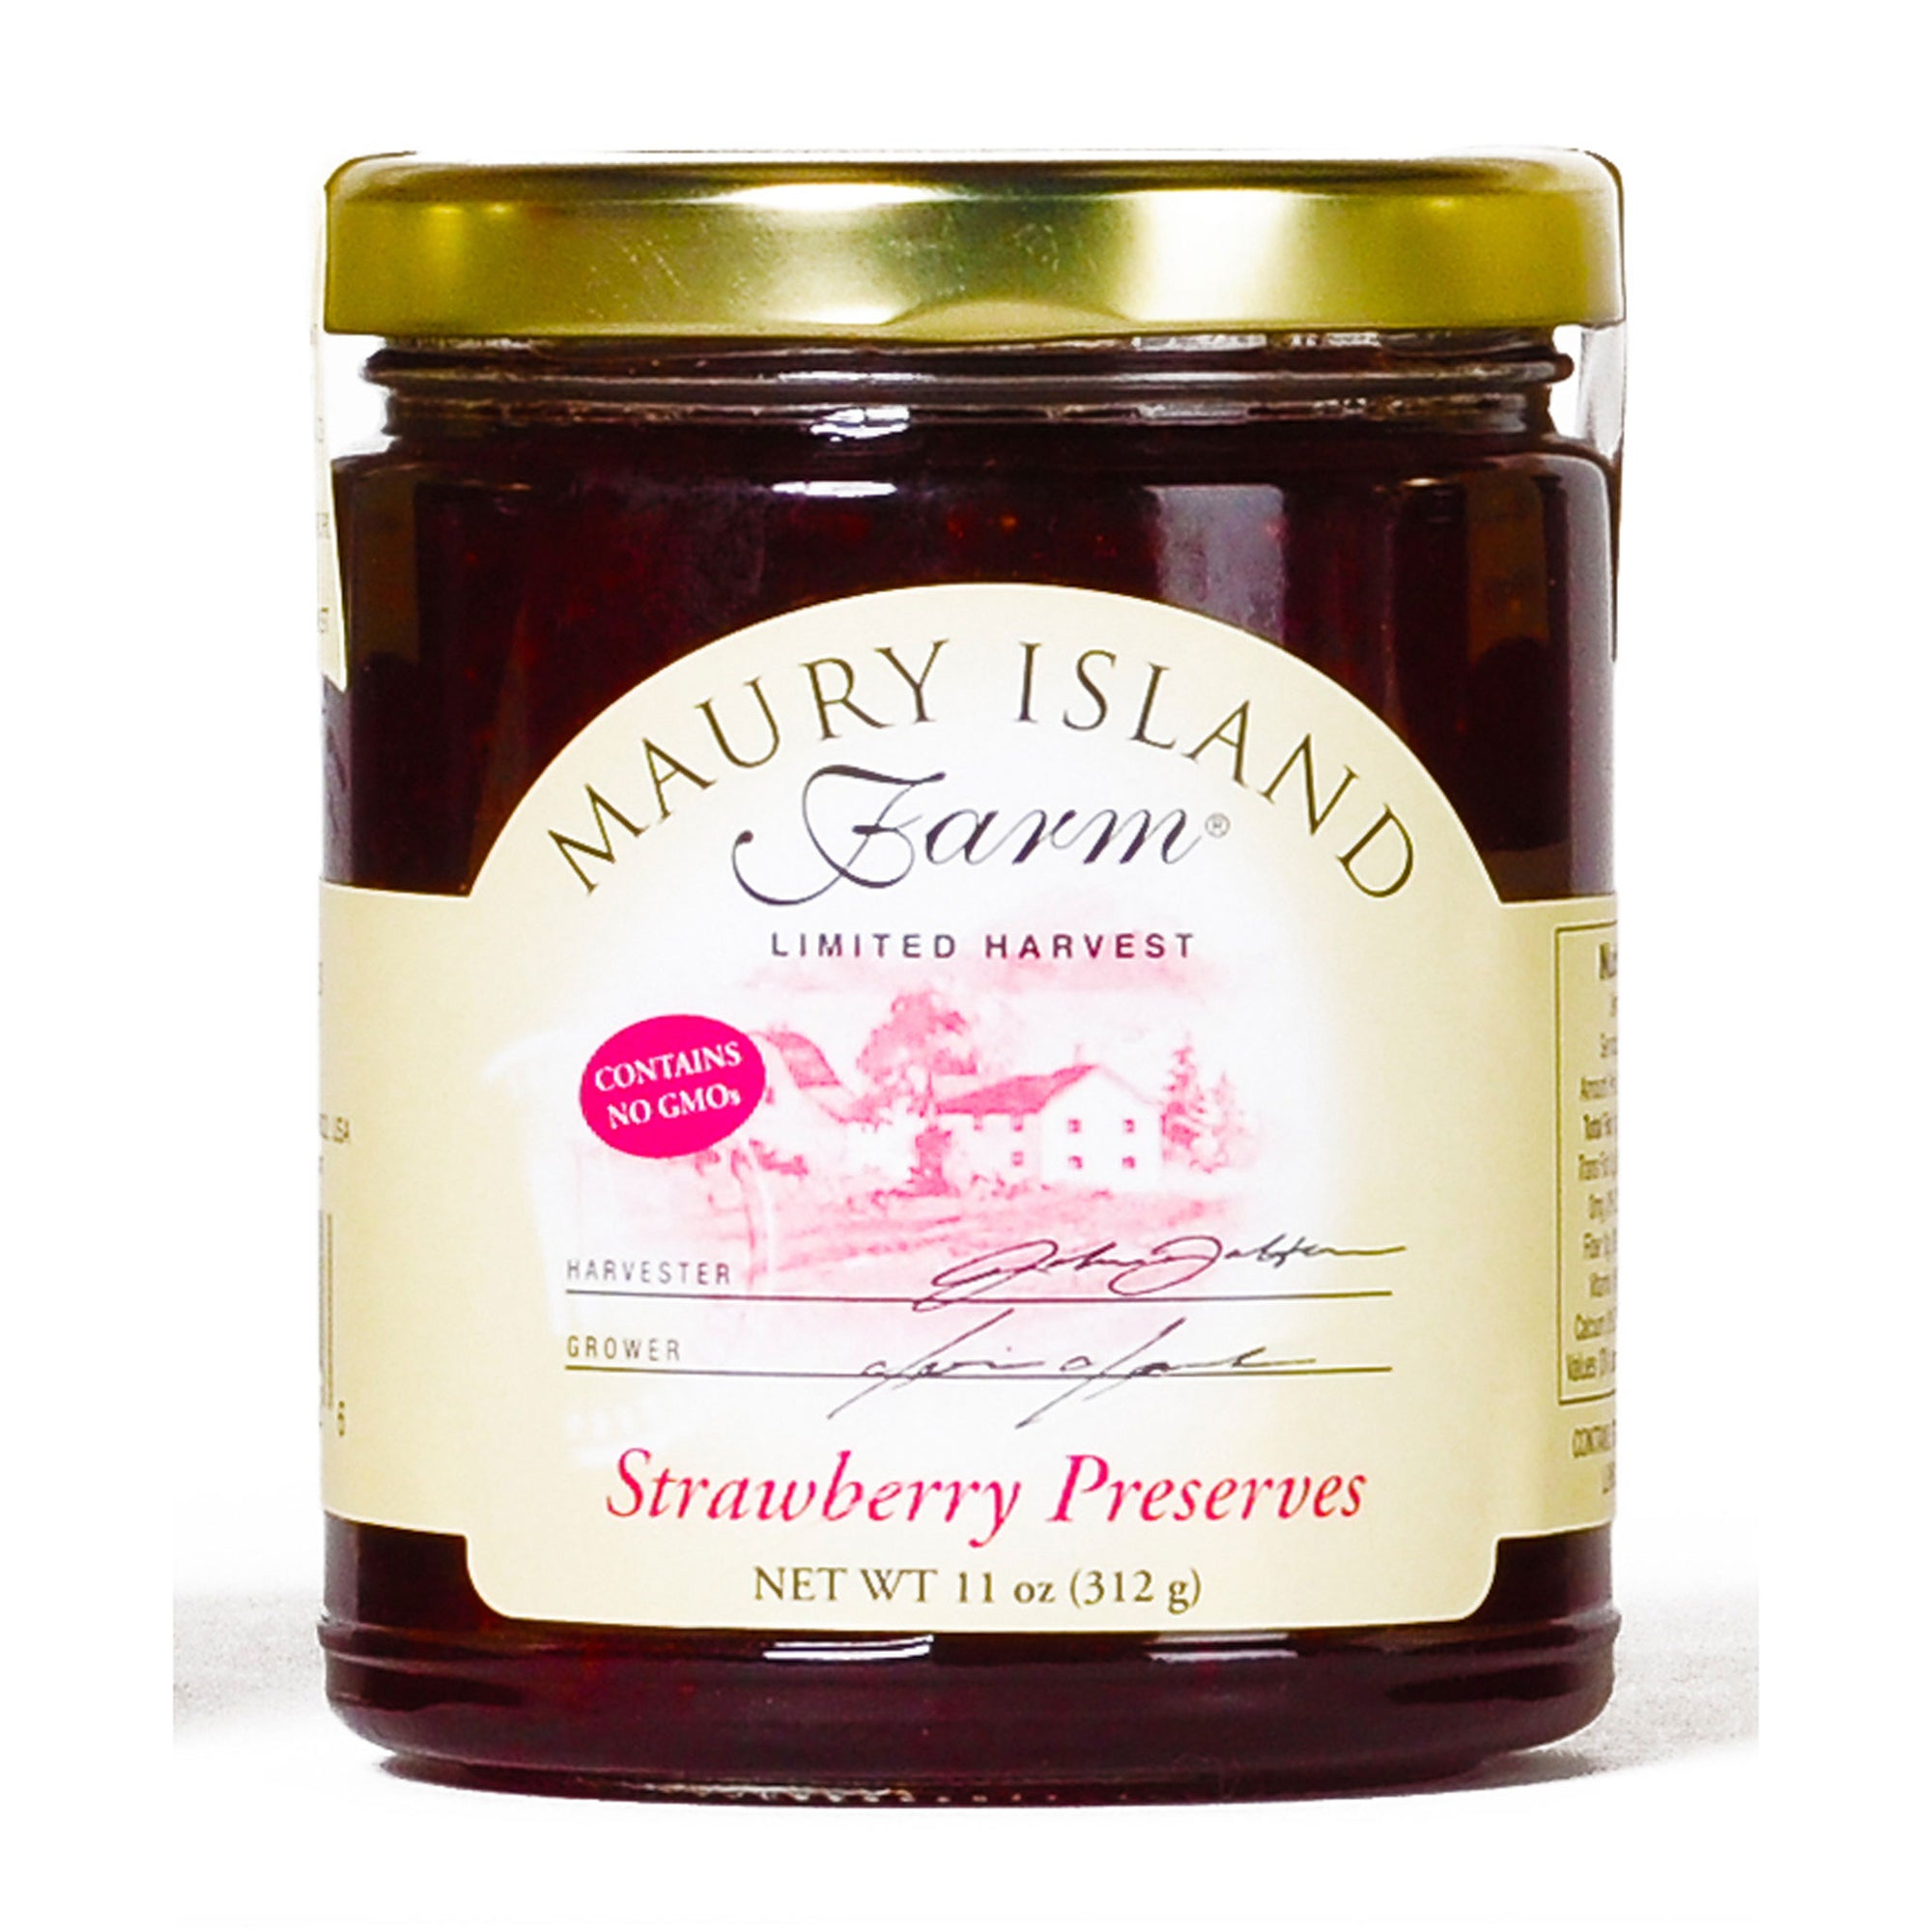 Maury Island Farm Limited Harvest Strawberry Preserves 11-Ounce Glass Jar Contains No GMOs